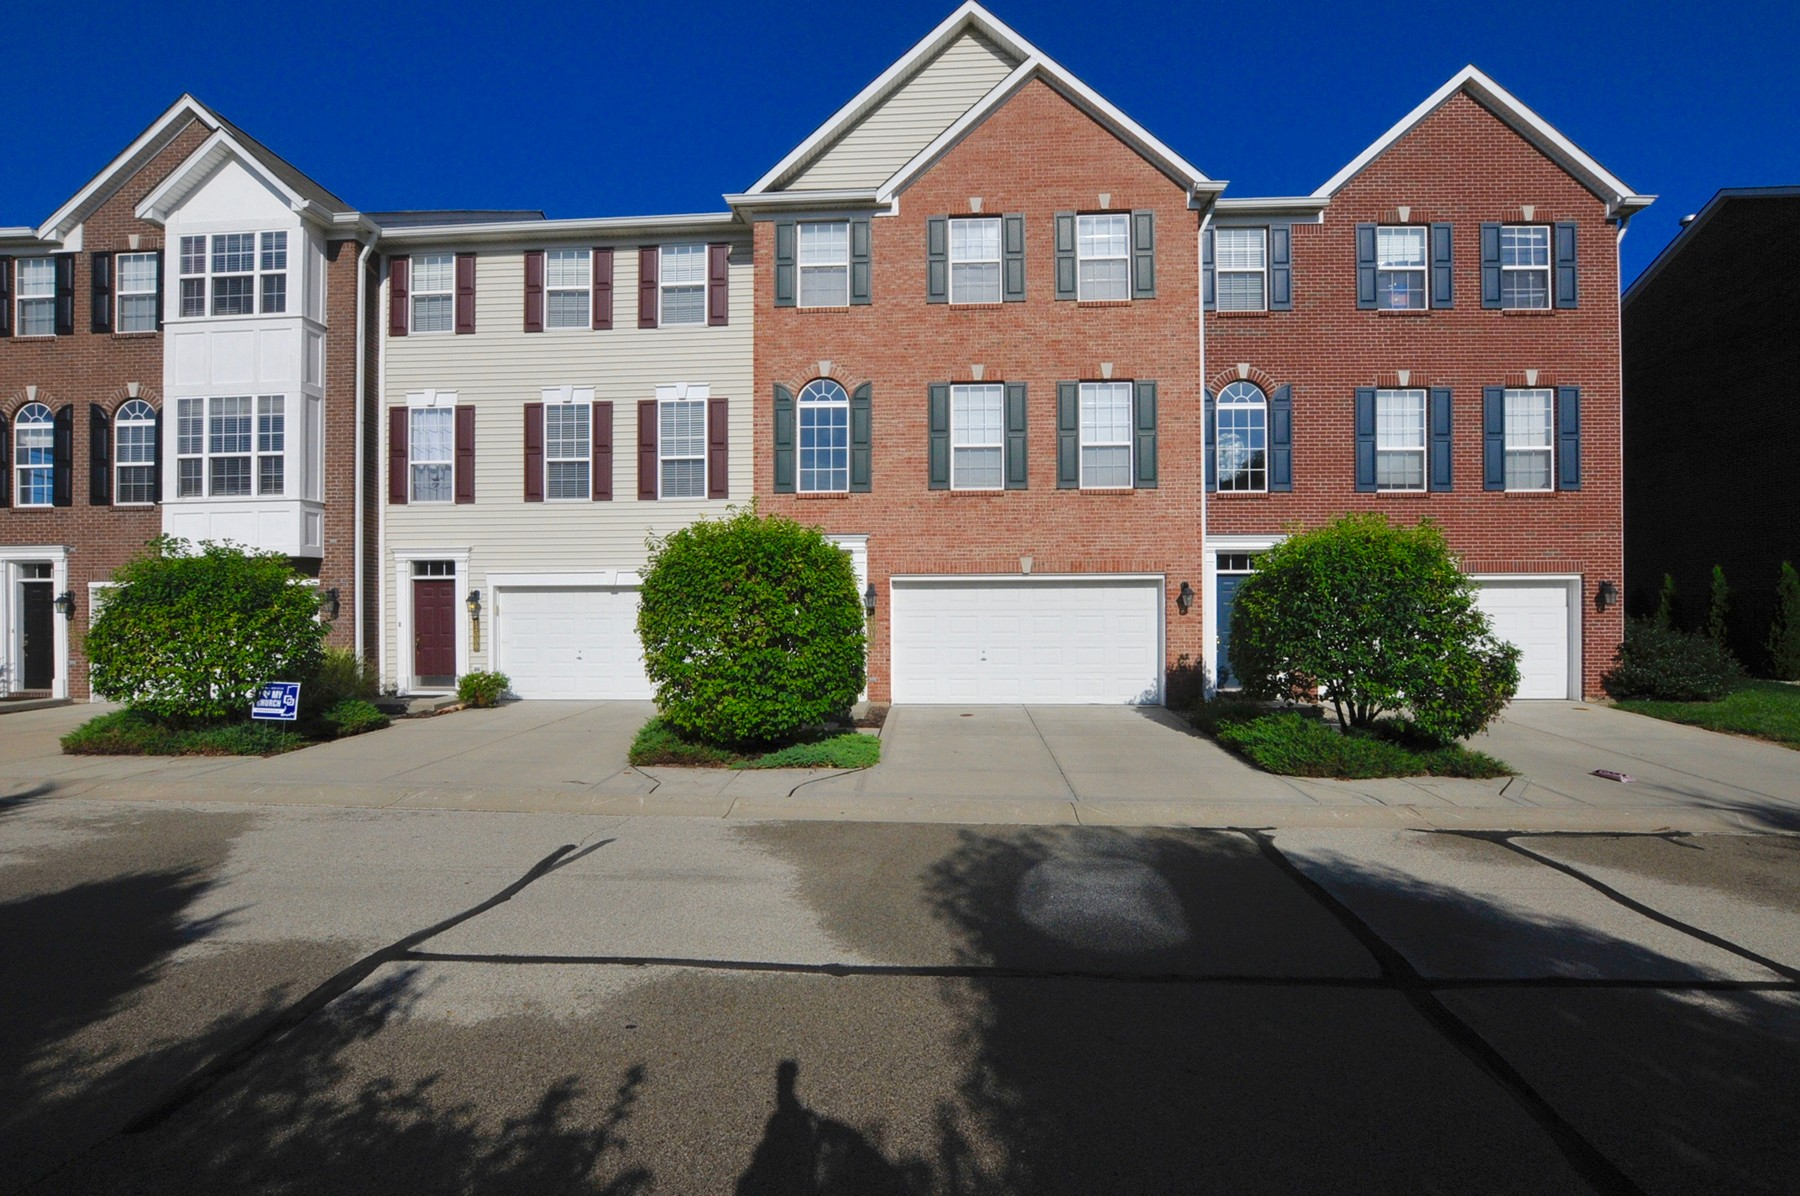 Townhouse for Rent at Great Townhome with Great Views 12010 Esty Way Carmel, Indiana 46033 United States